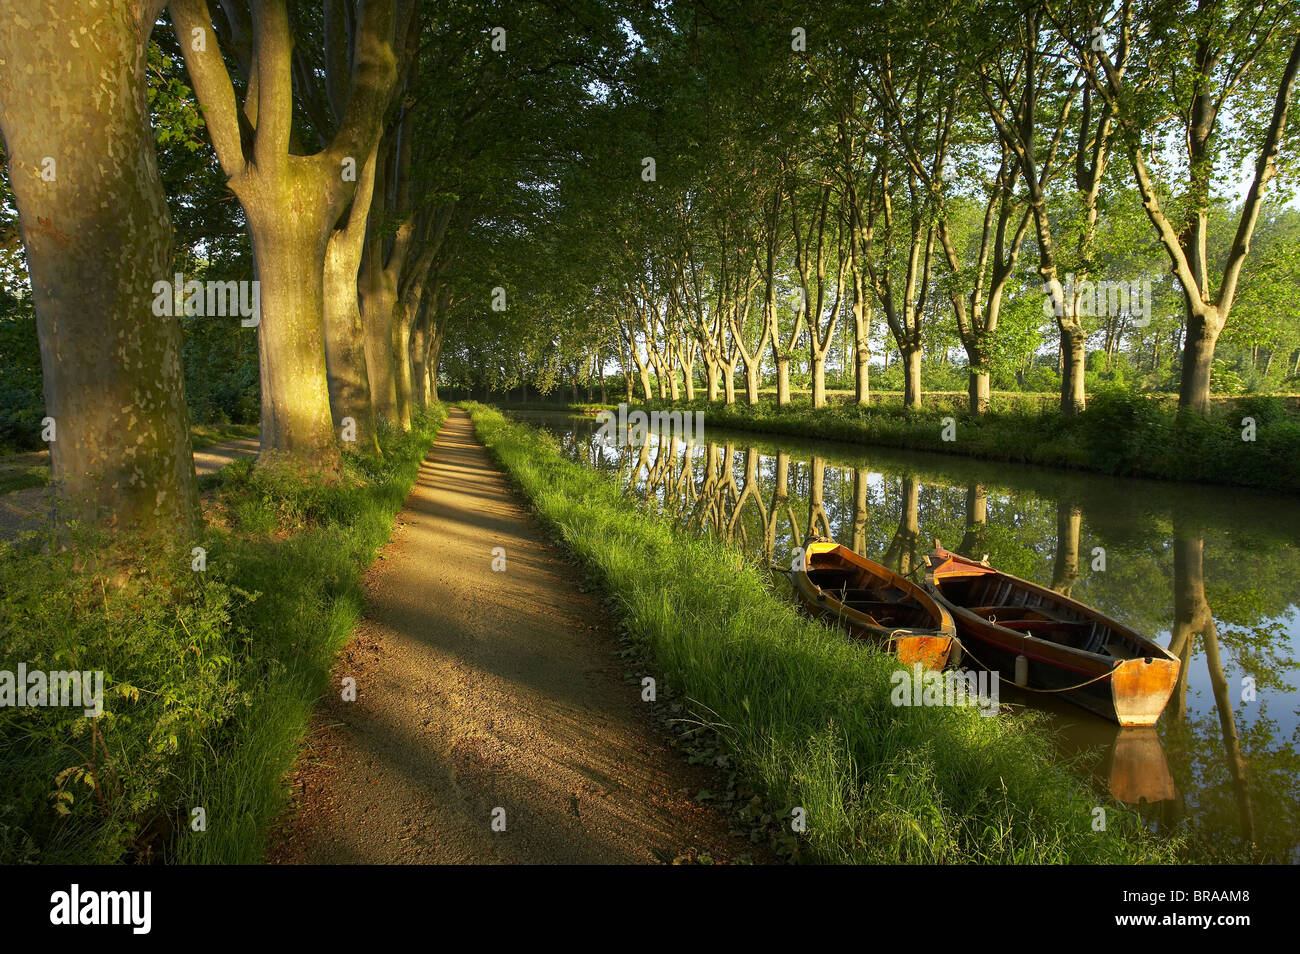 The tow path with row boats on the Canal du Midi, nr Carcassonne, Languedoc, France - Stock Image